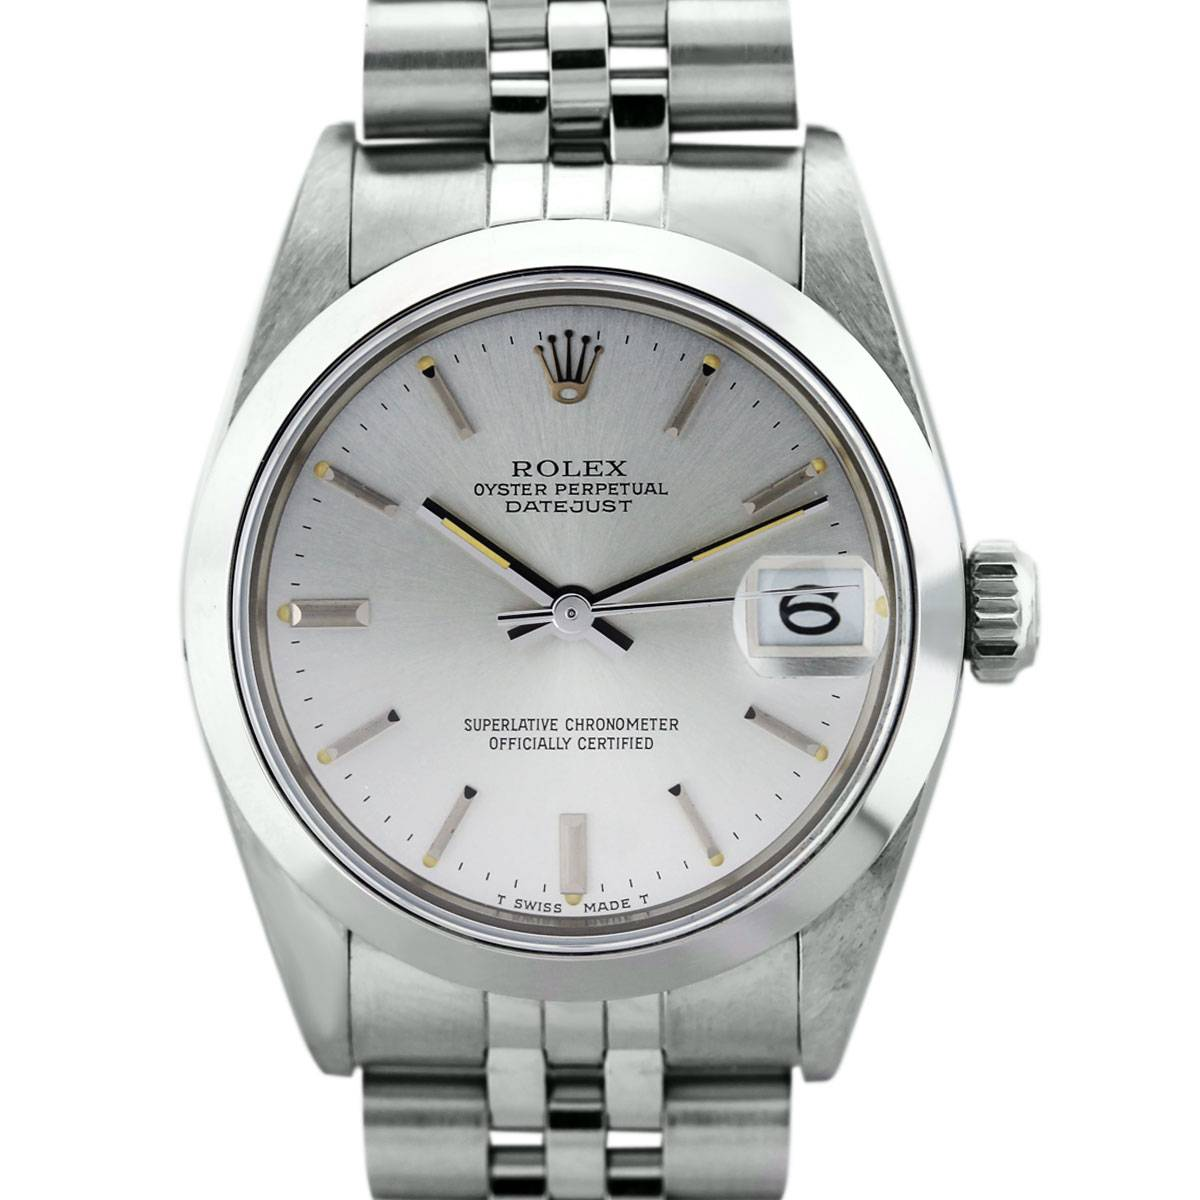 Midsize Rolex Datejust 68240 Stainless Steel Watch